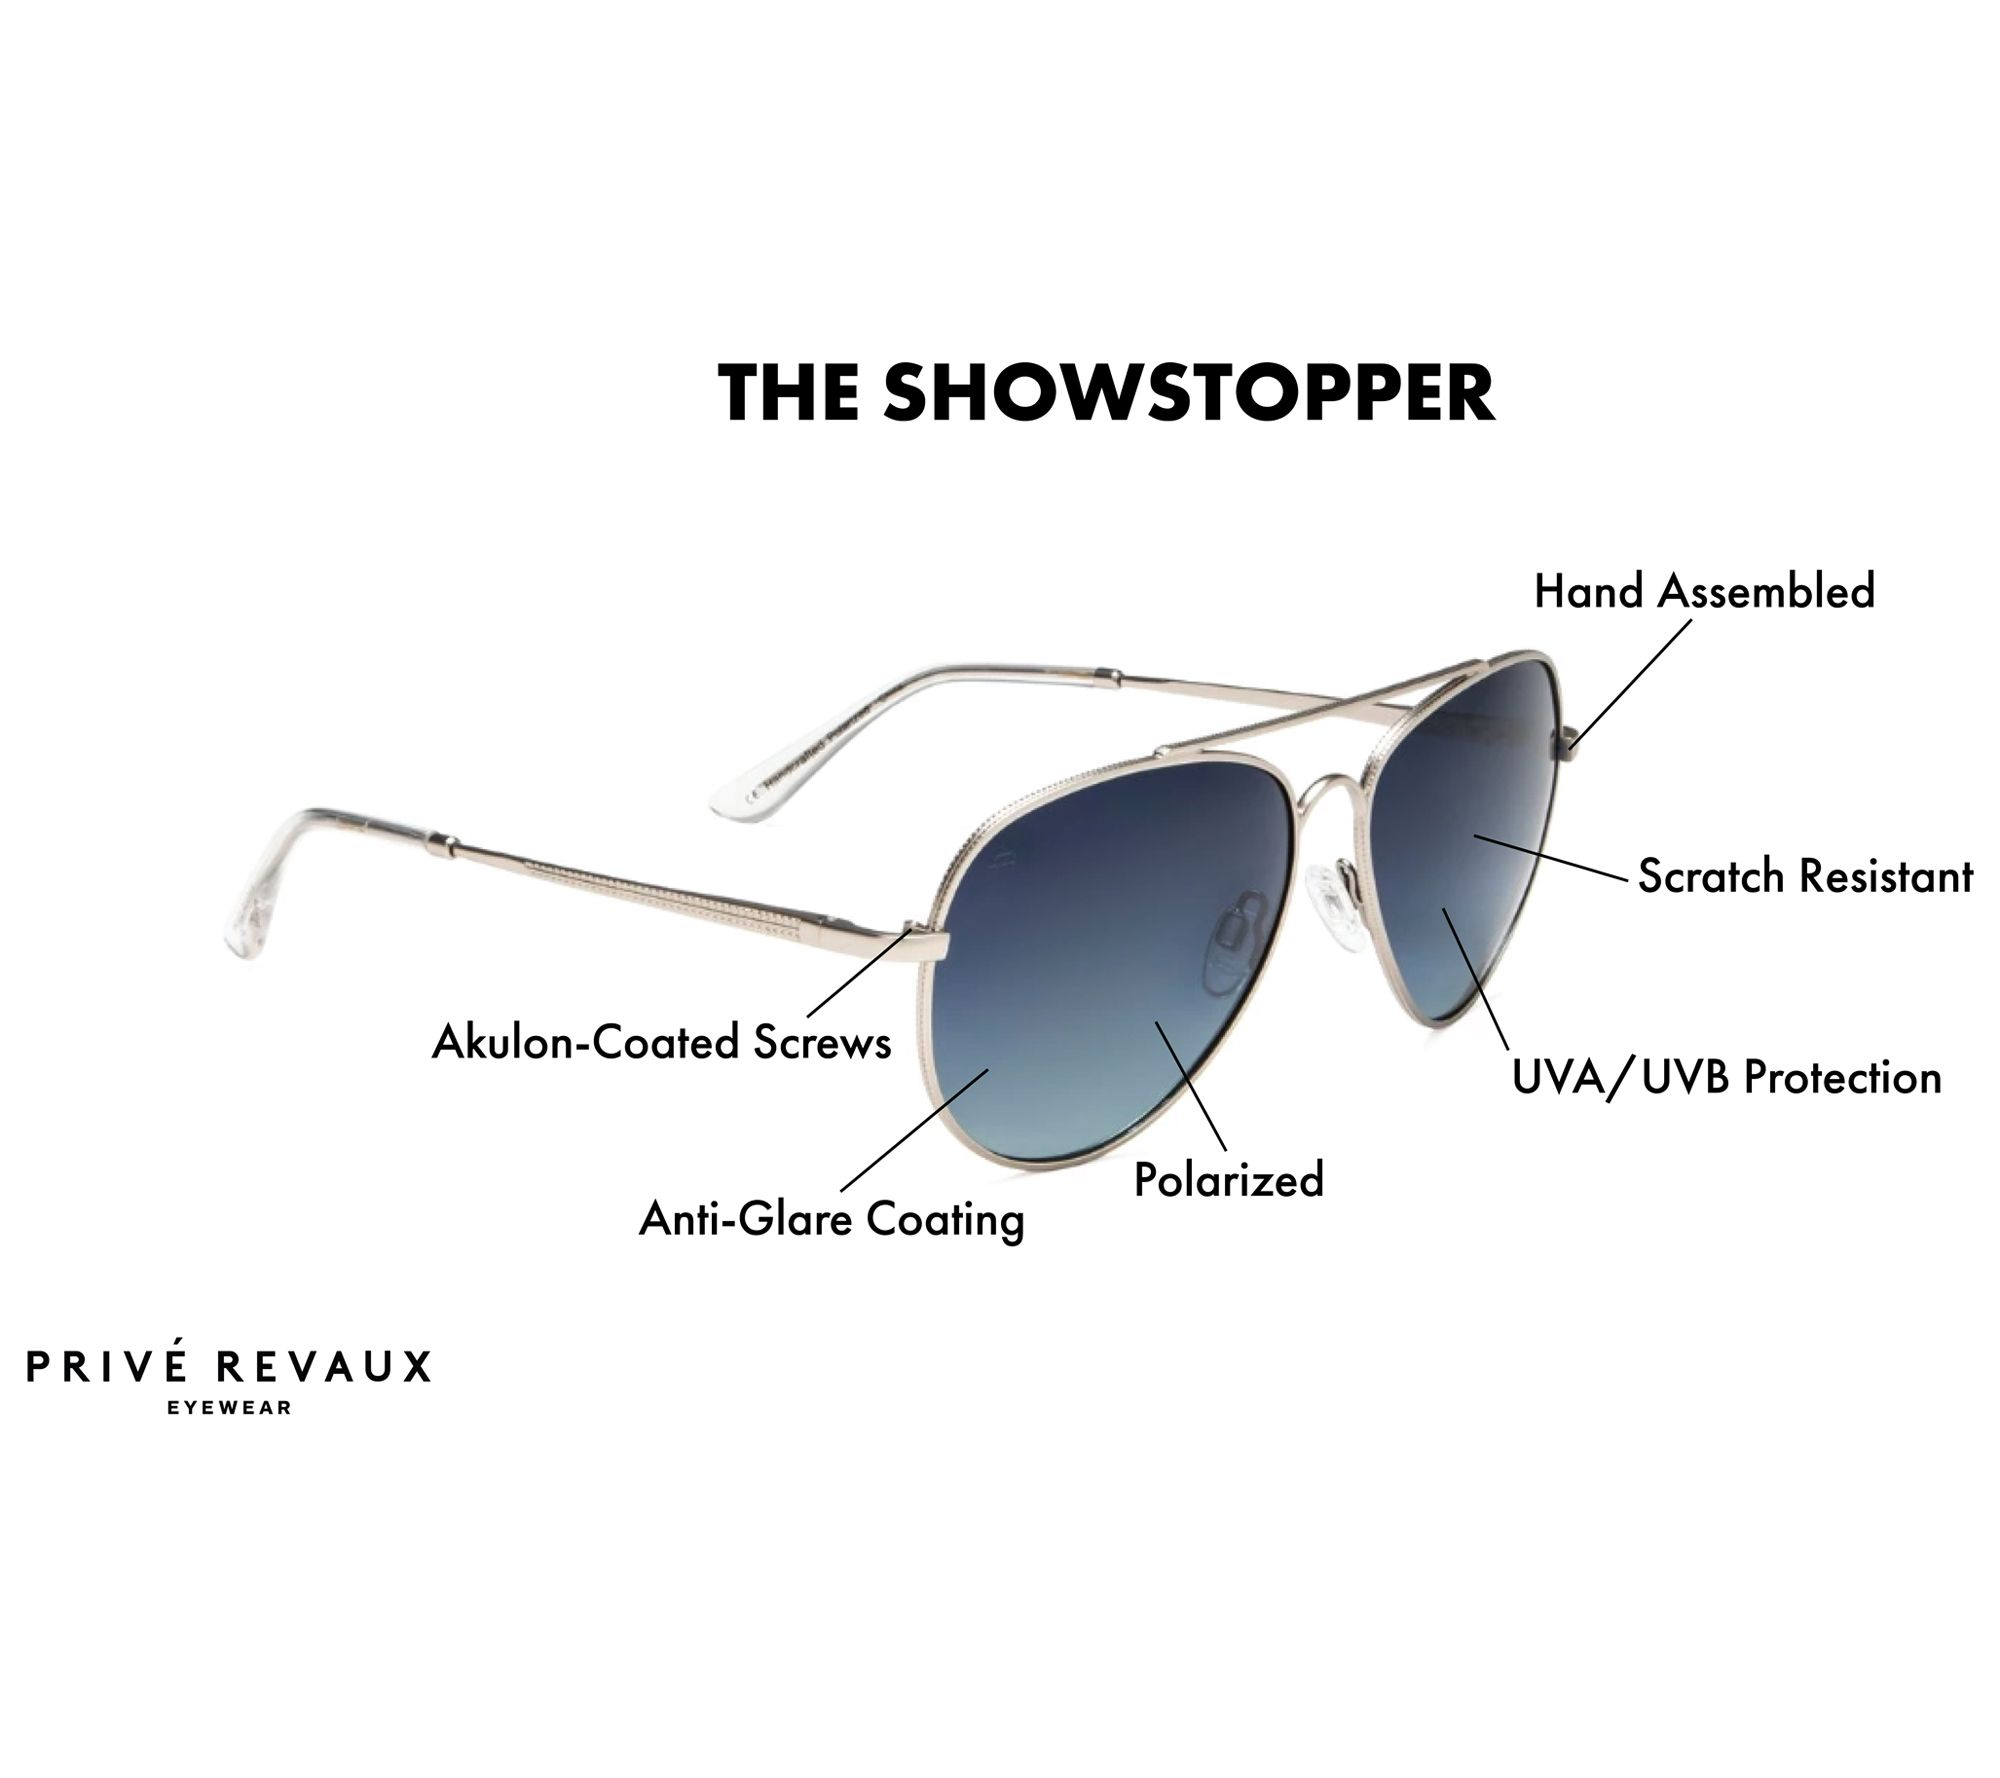 11355b9a89fbd Prive Revaux The Showstopper Polarized Sunglasses - Page 1 — QVC.com